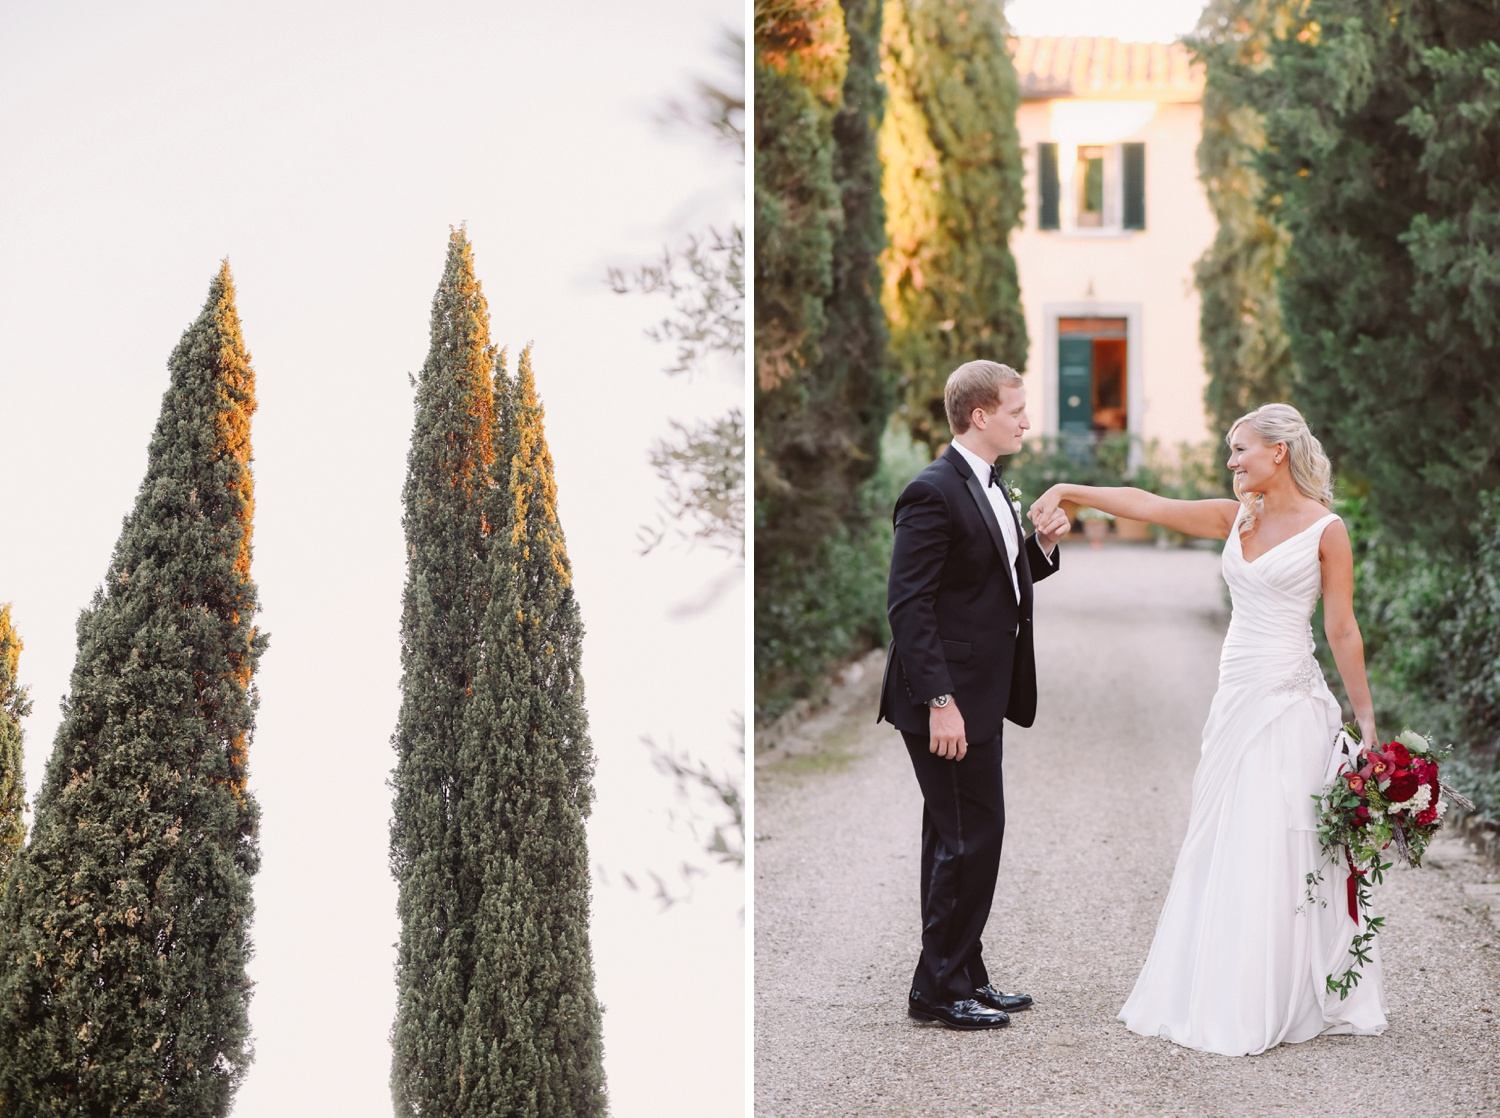 wedding-photographer-florence-fourseason-tuscany_1357.jpg